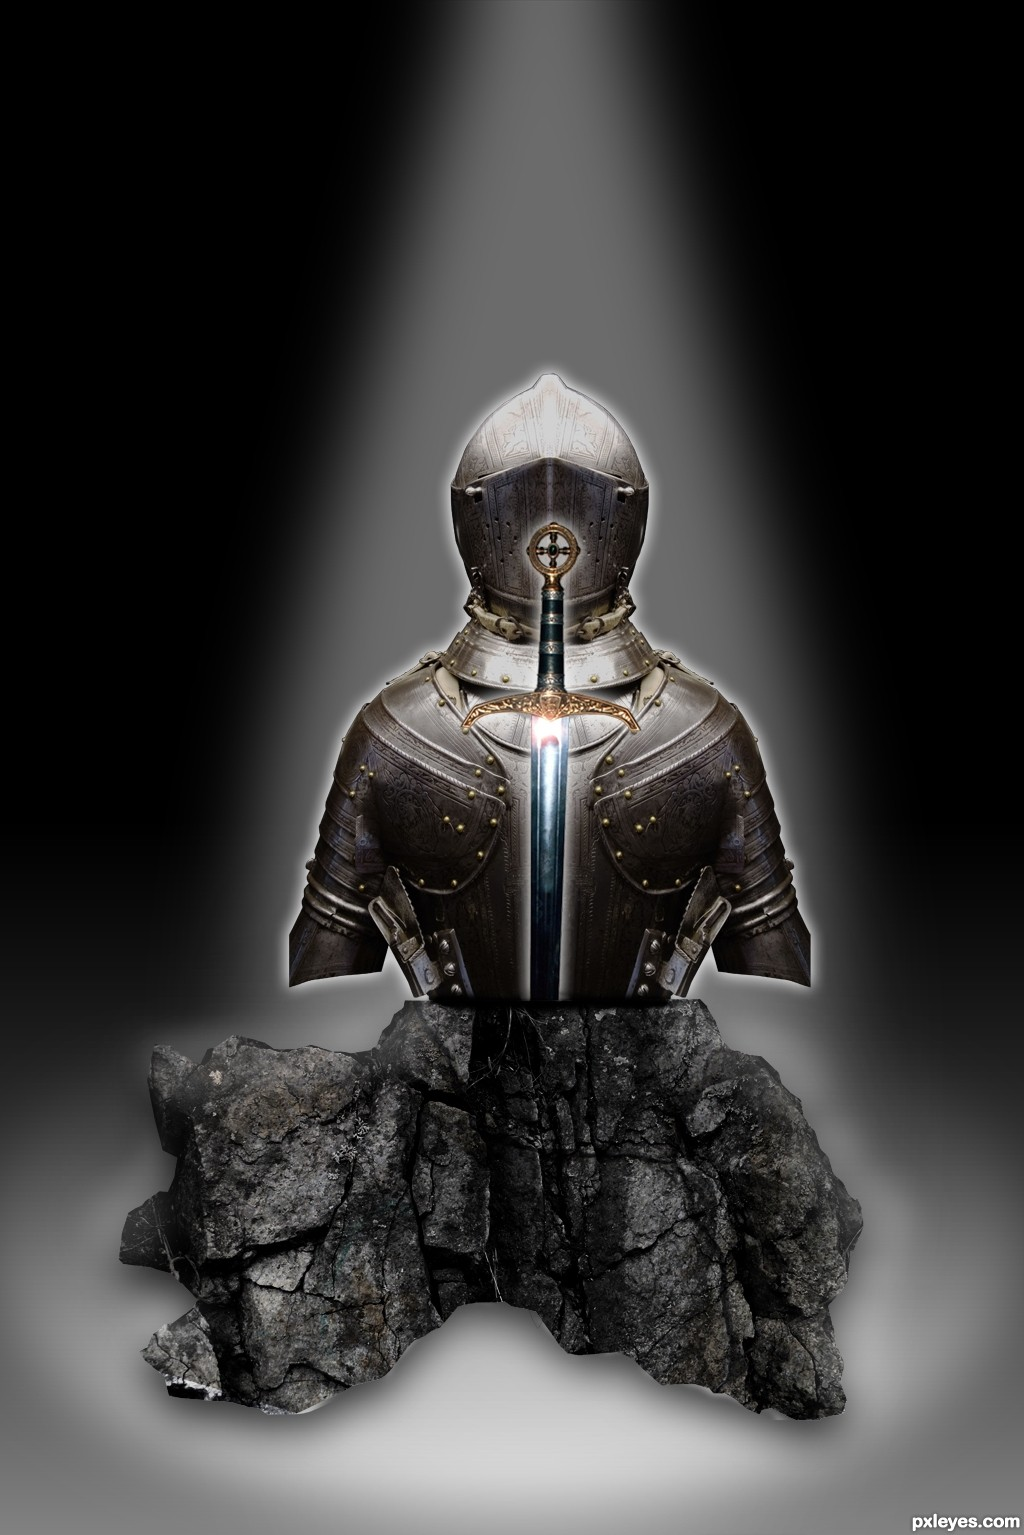 The meaning and origin of the expression: A knight in shining armour